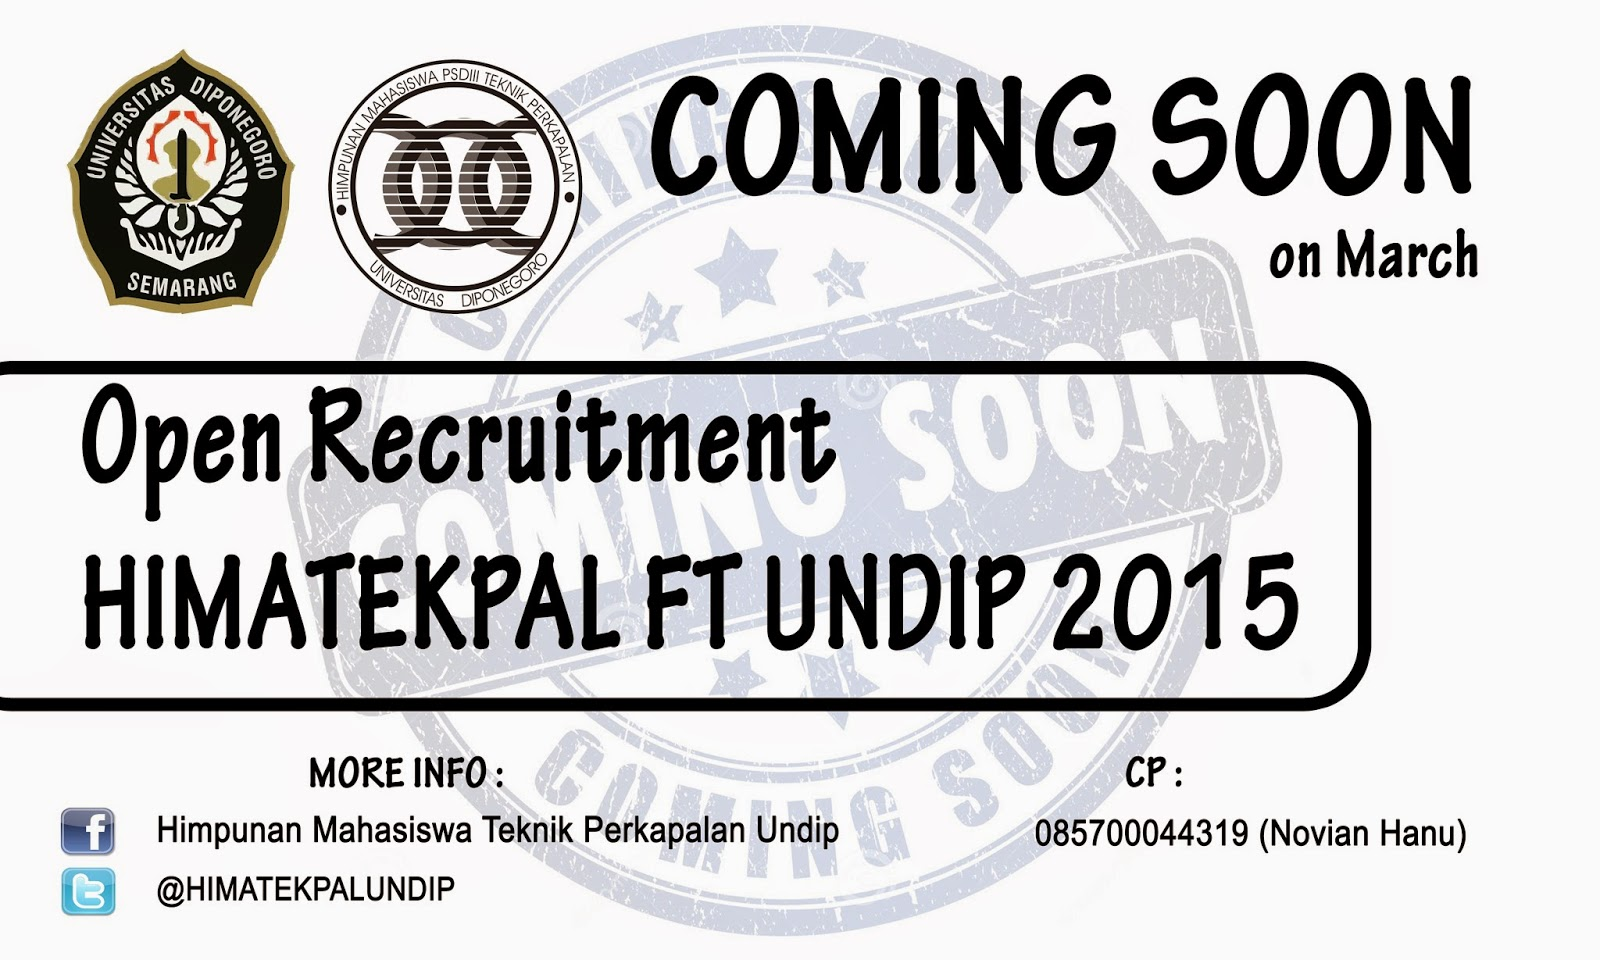 Open Recruitment HIMATEKPAL UNDIP 2015